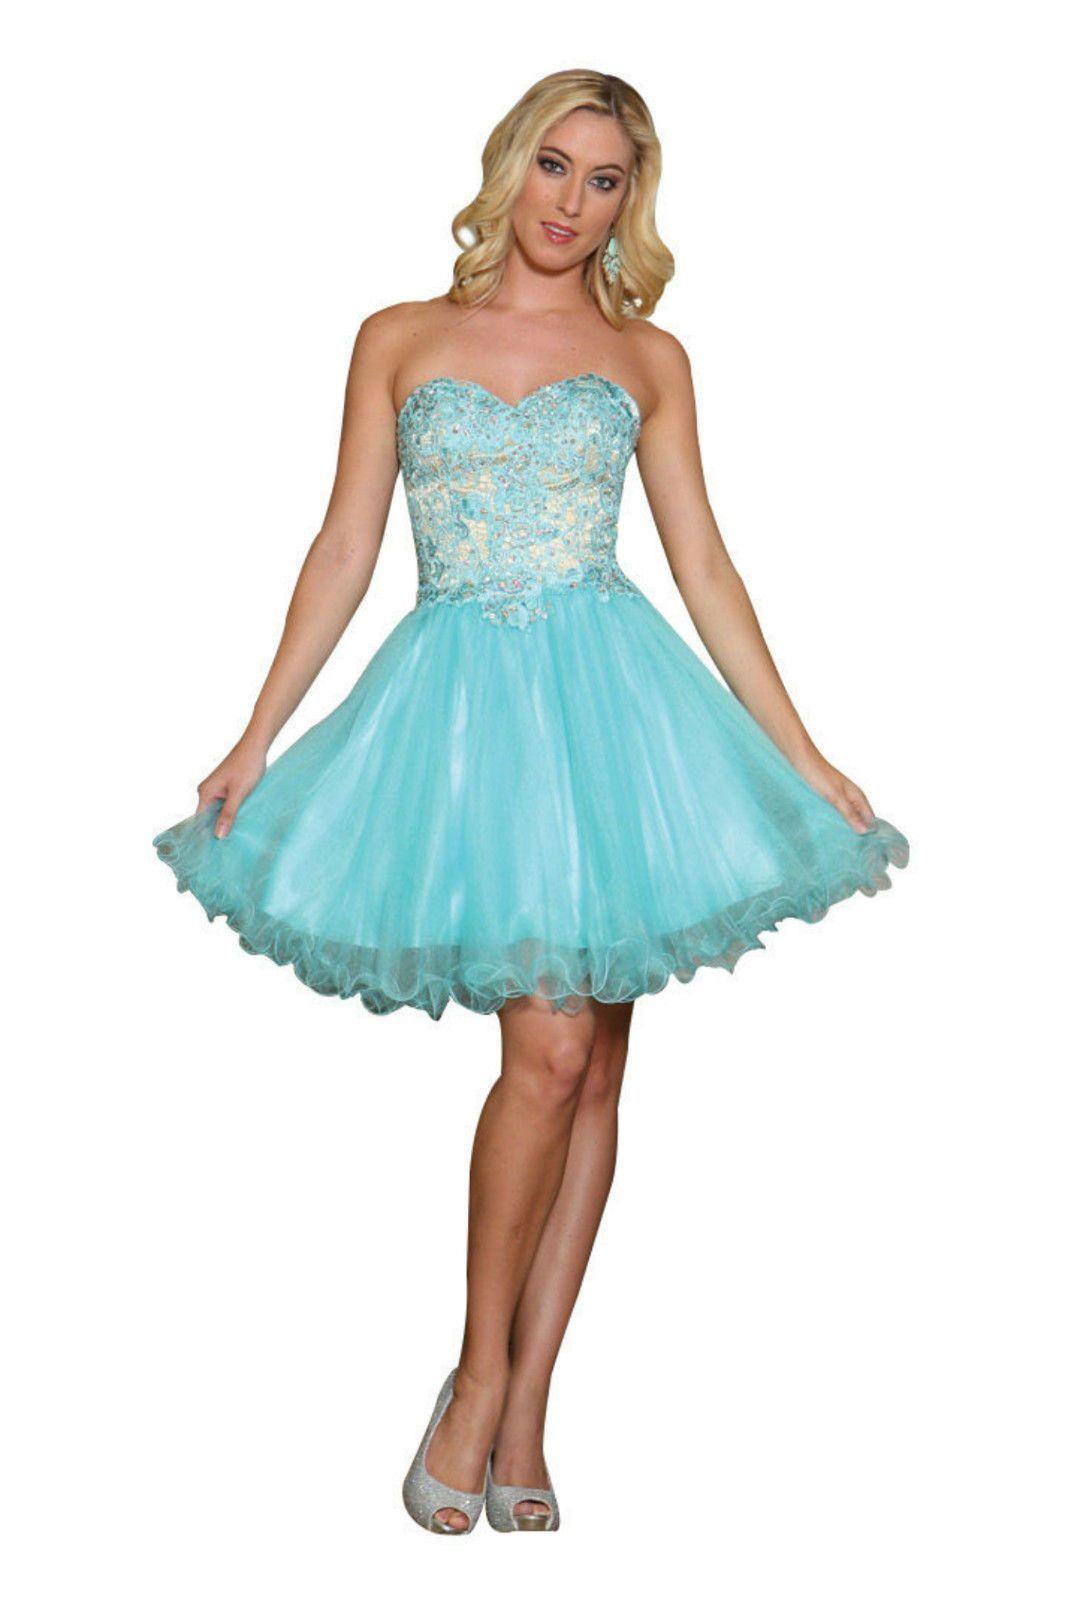 TheDressOutlet Prom Short Mini Dress | Lace applique, Sassy and Sequins